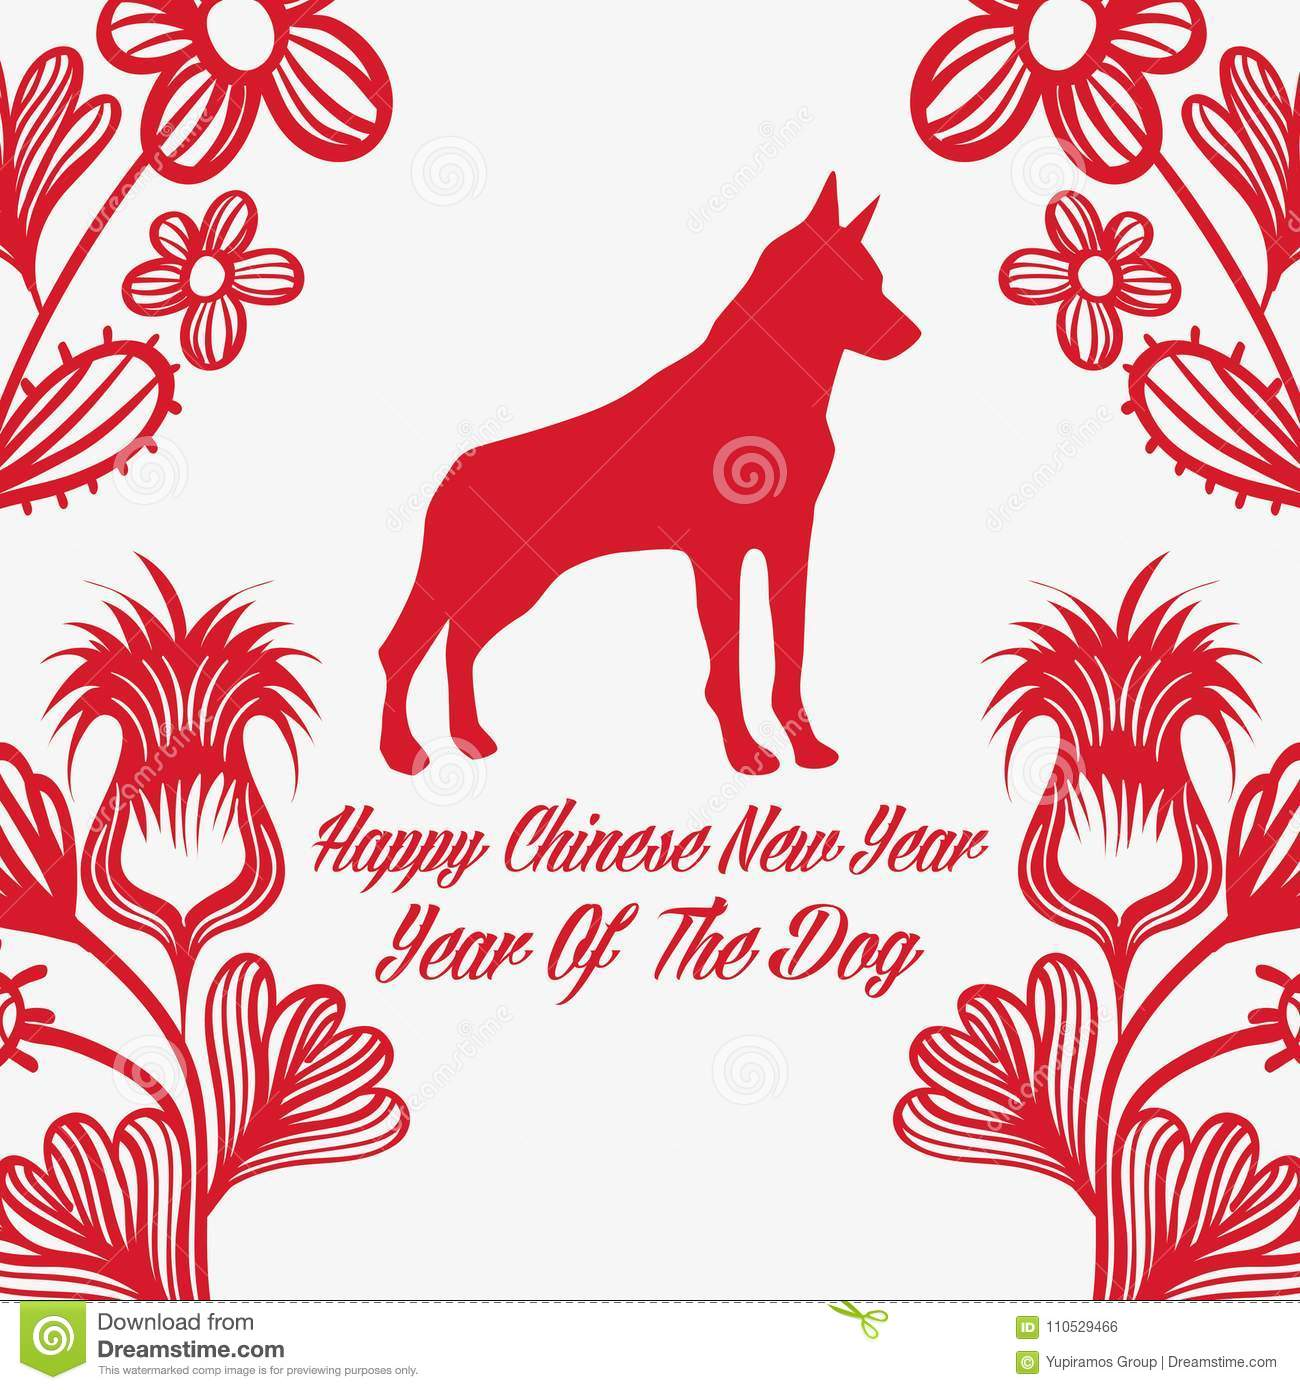 download happy dog new year tradition stock vector illustration of character artwork 110529466